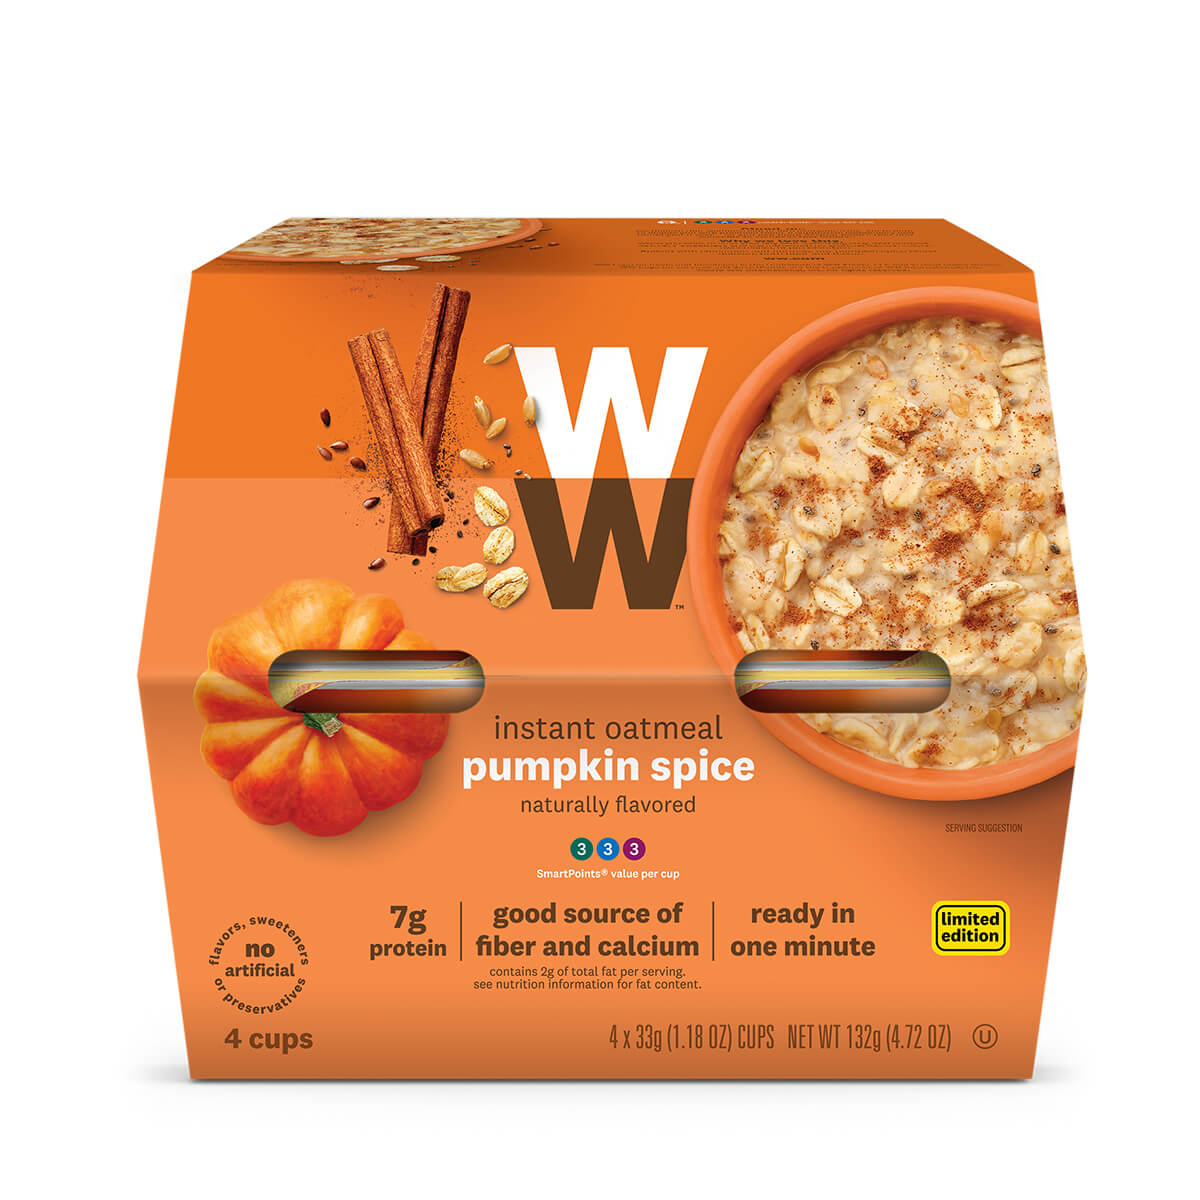 Pumpkin Spice Oatmeal, 7g of protein, good source of fiber and calcium